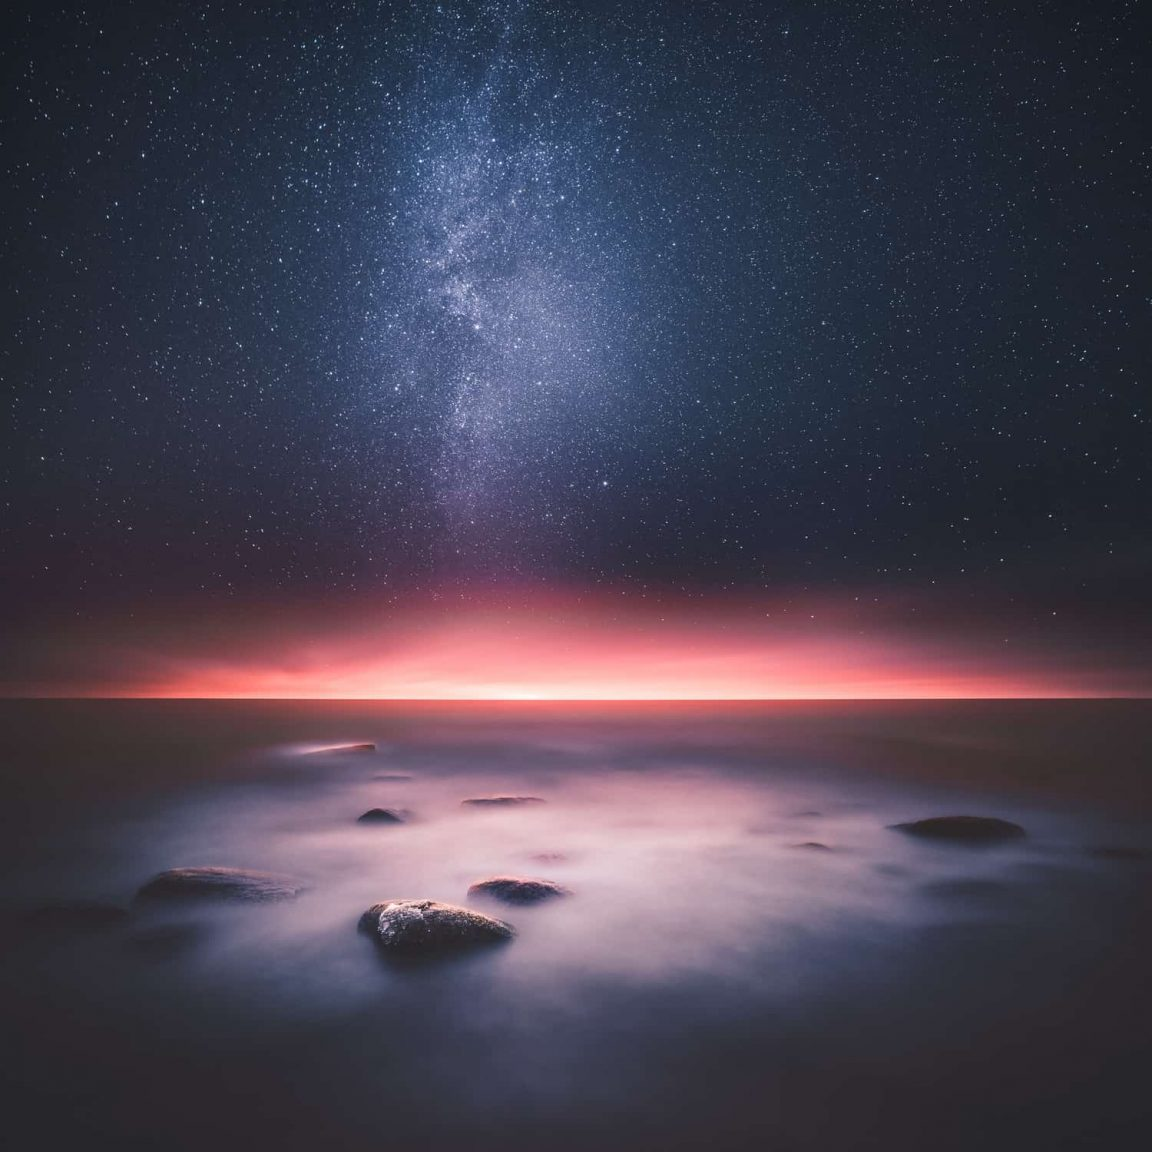 Mikko Lagerstedt The Whole Universe Surrenders